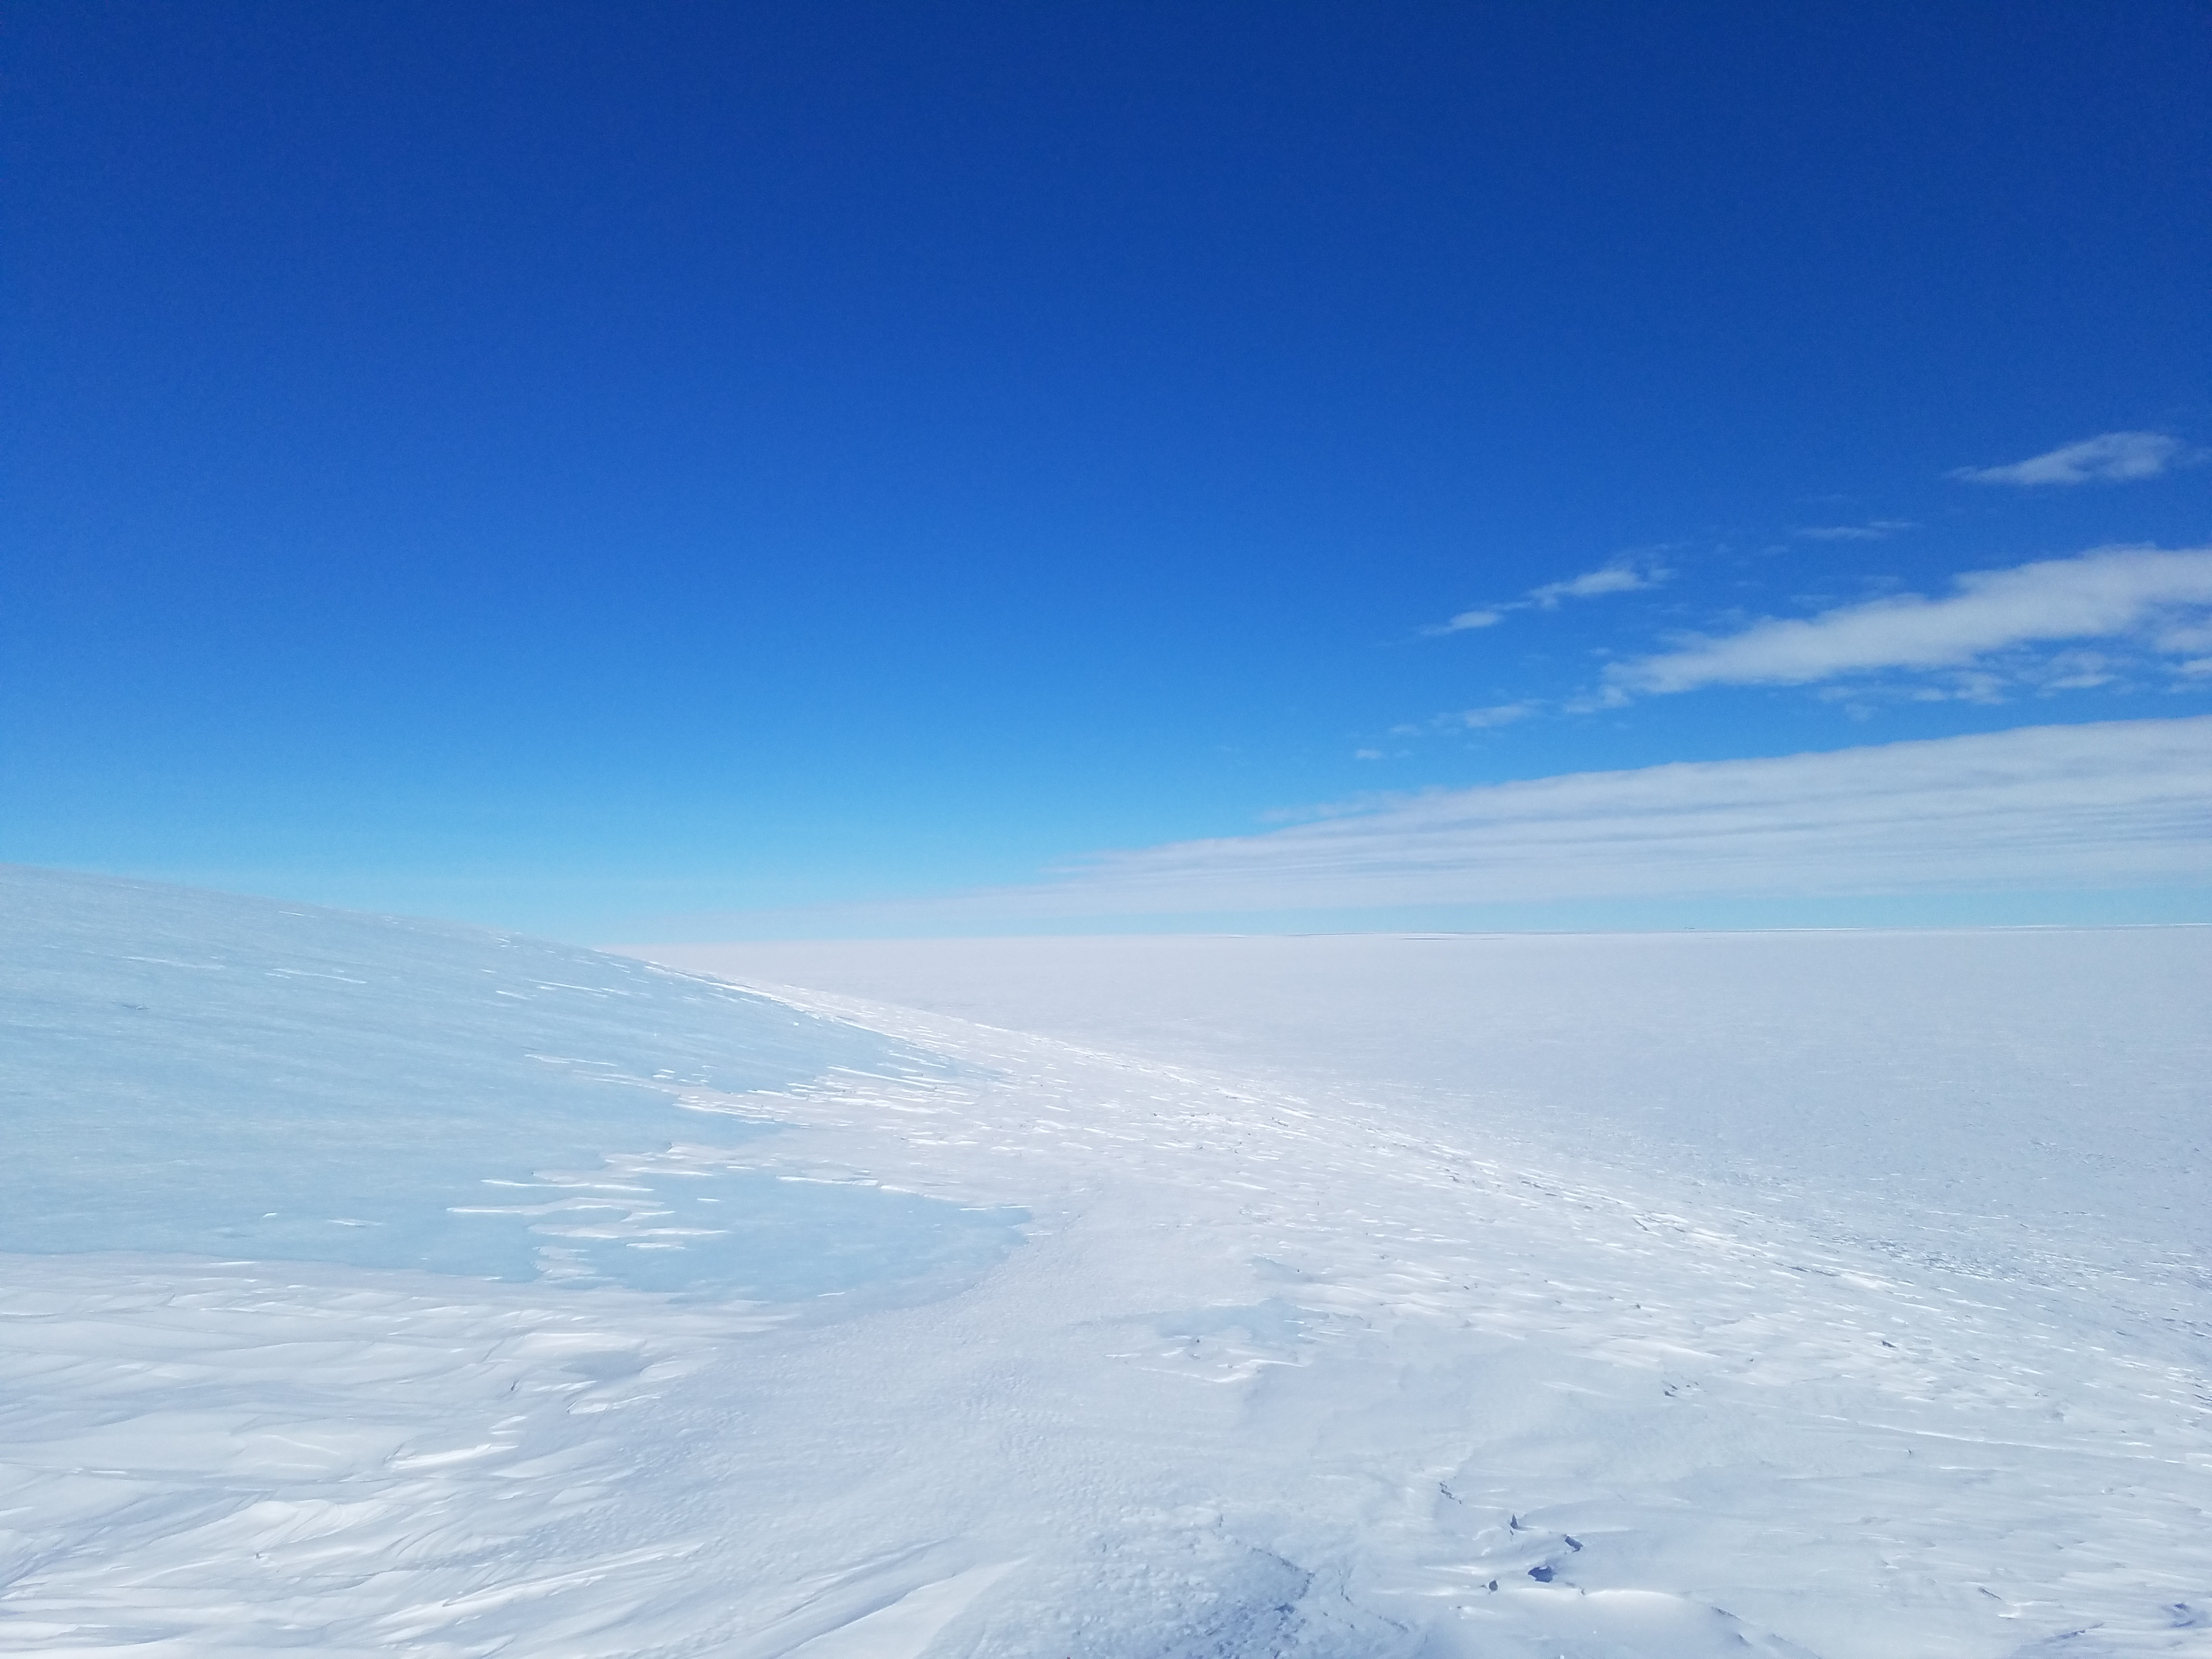 Ancient blue ice of the West Antarctic Ice Sheet covered in drifting snow.